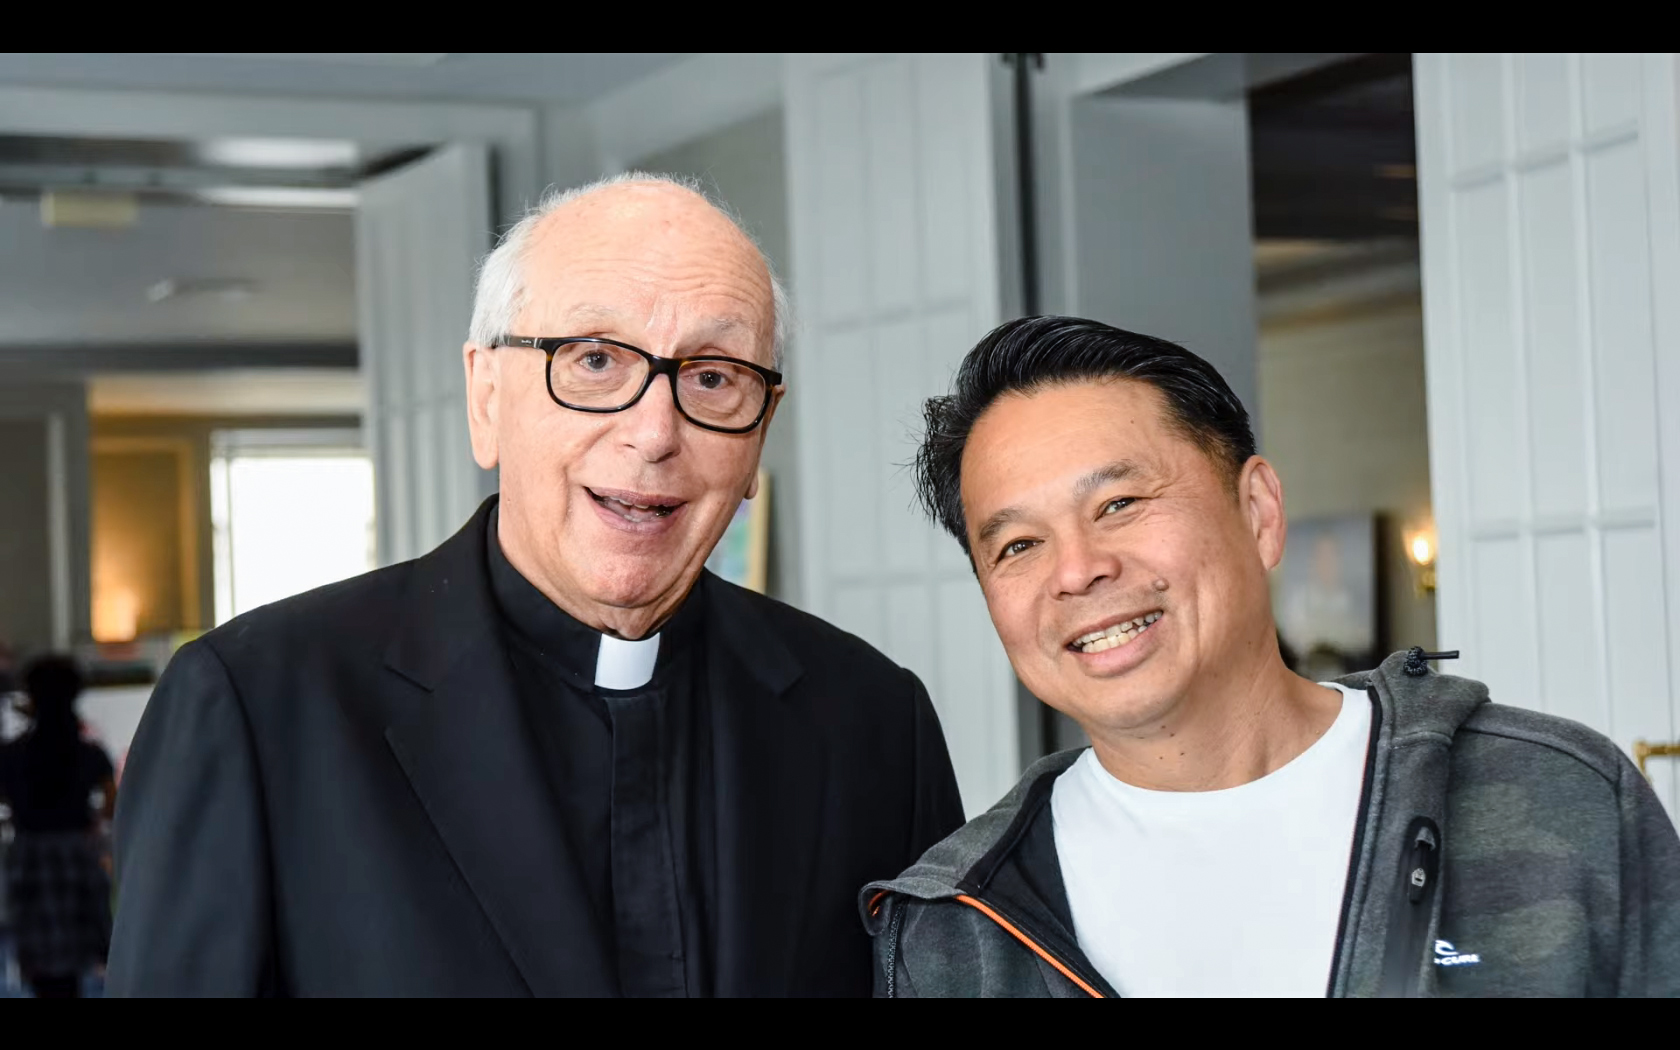 MDA co-founder Fr. Charles Gagan, S.J. (left) and chef Charles Phan